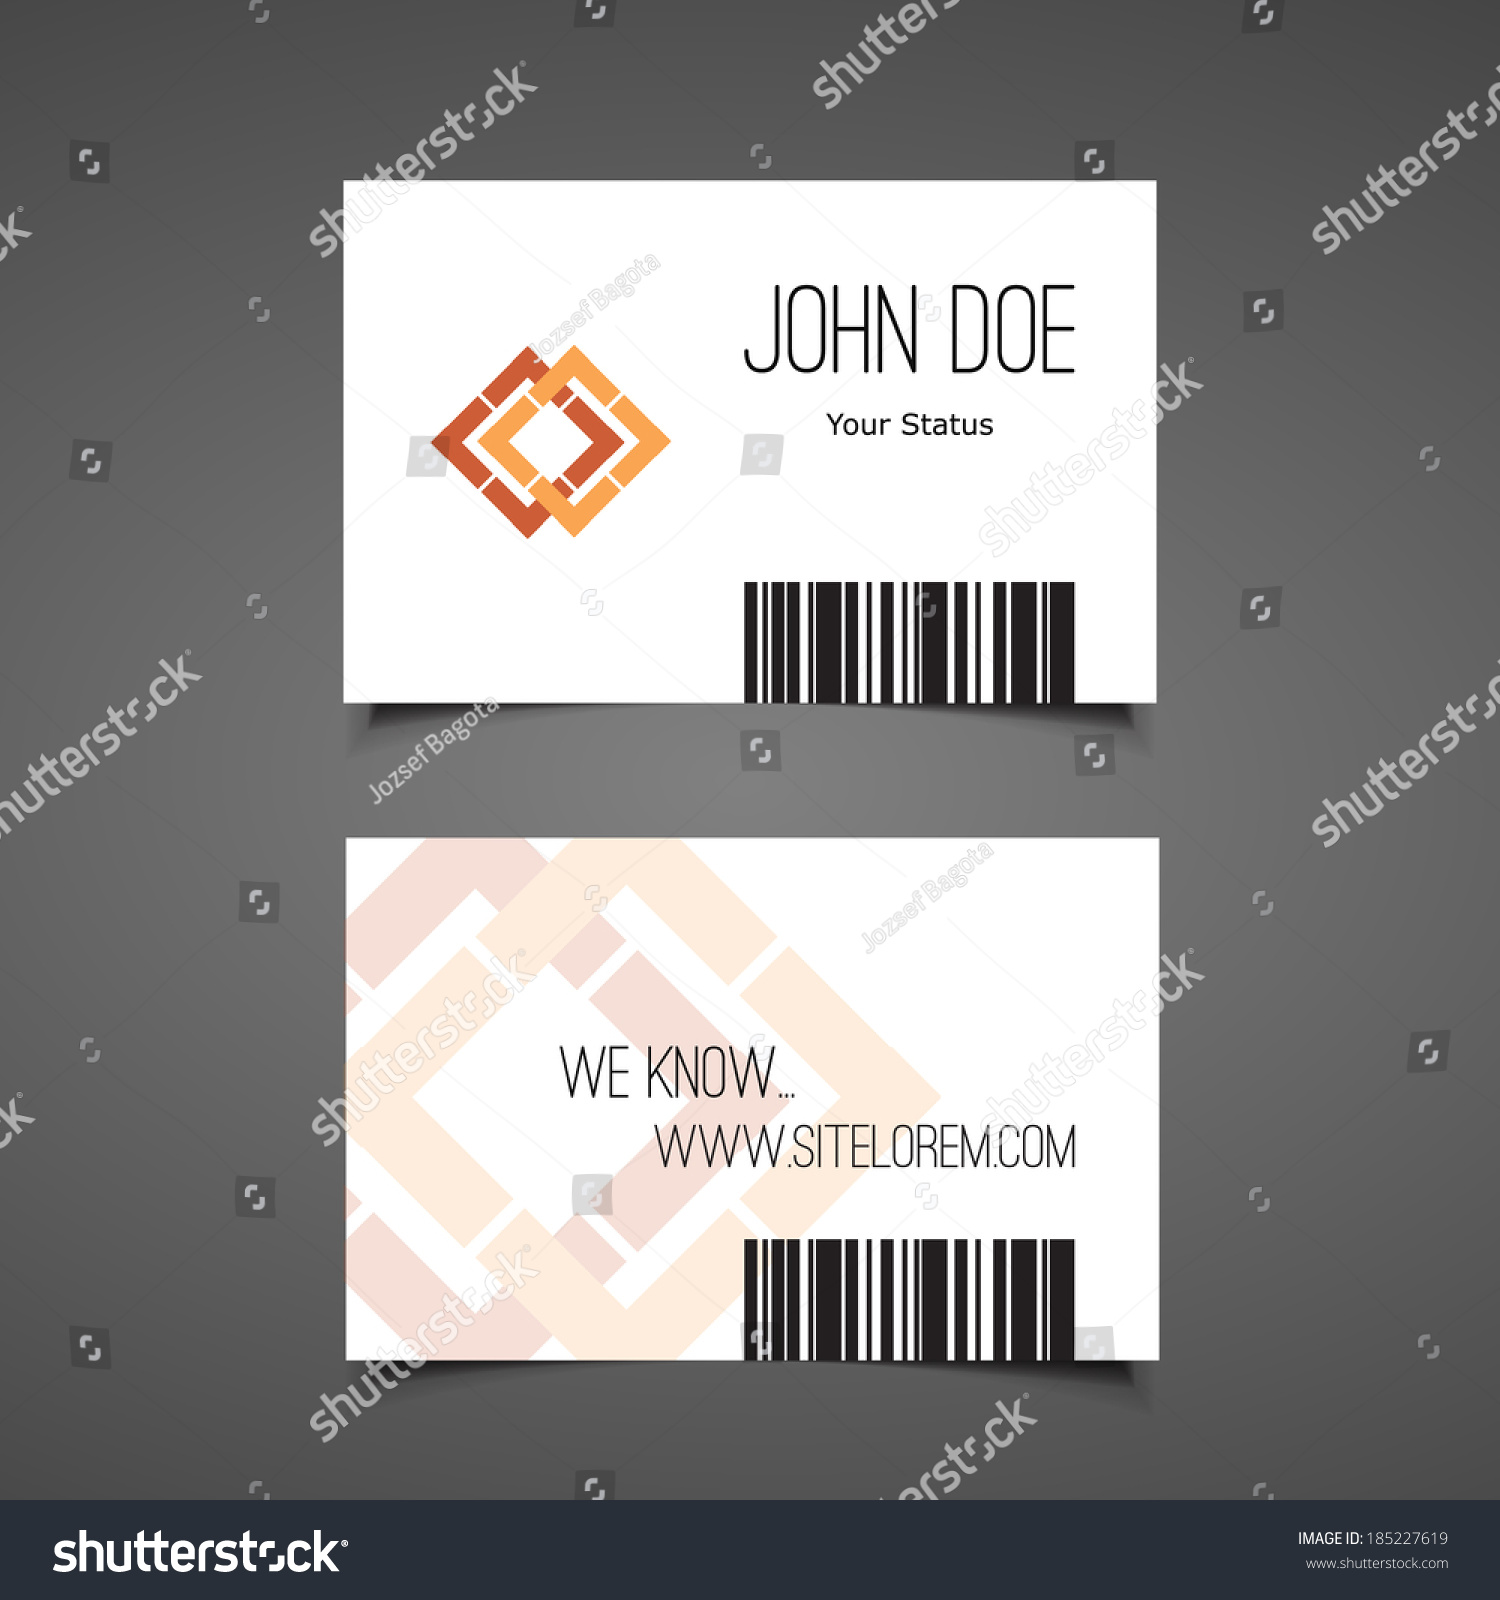 Business Gift Card Design Barcode Background Stock Vector